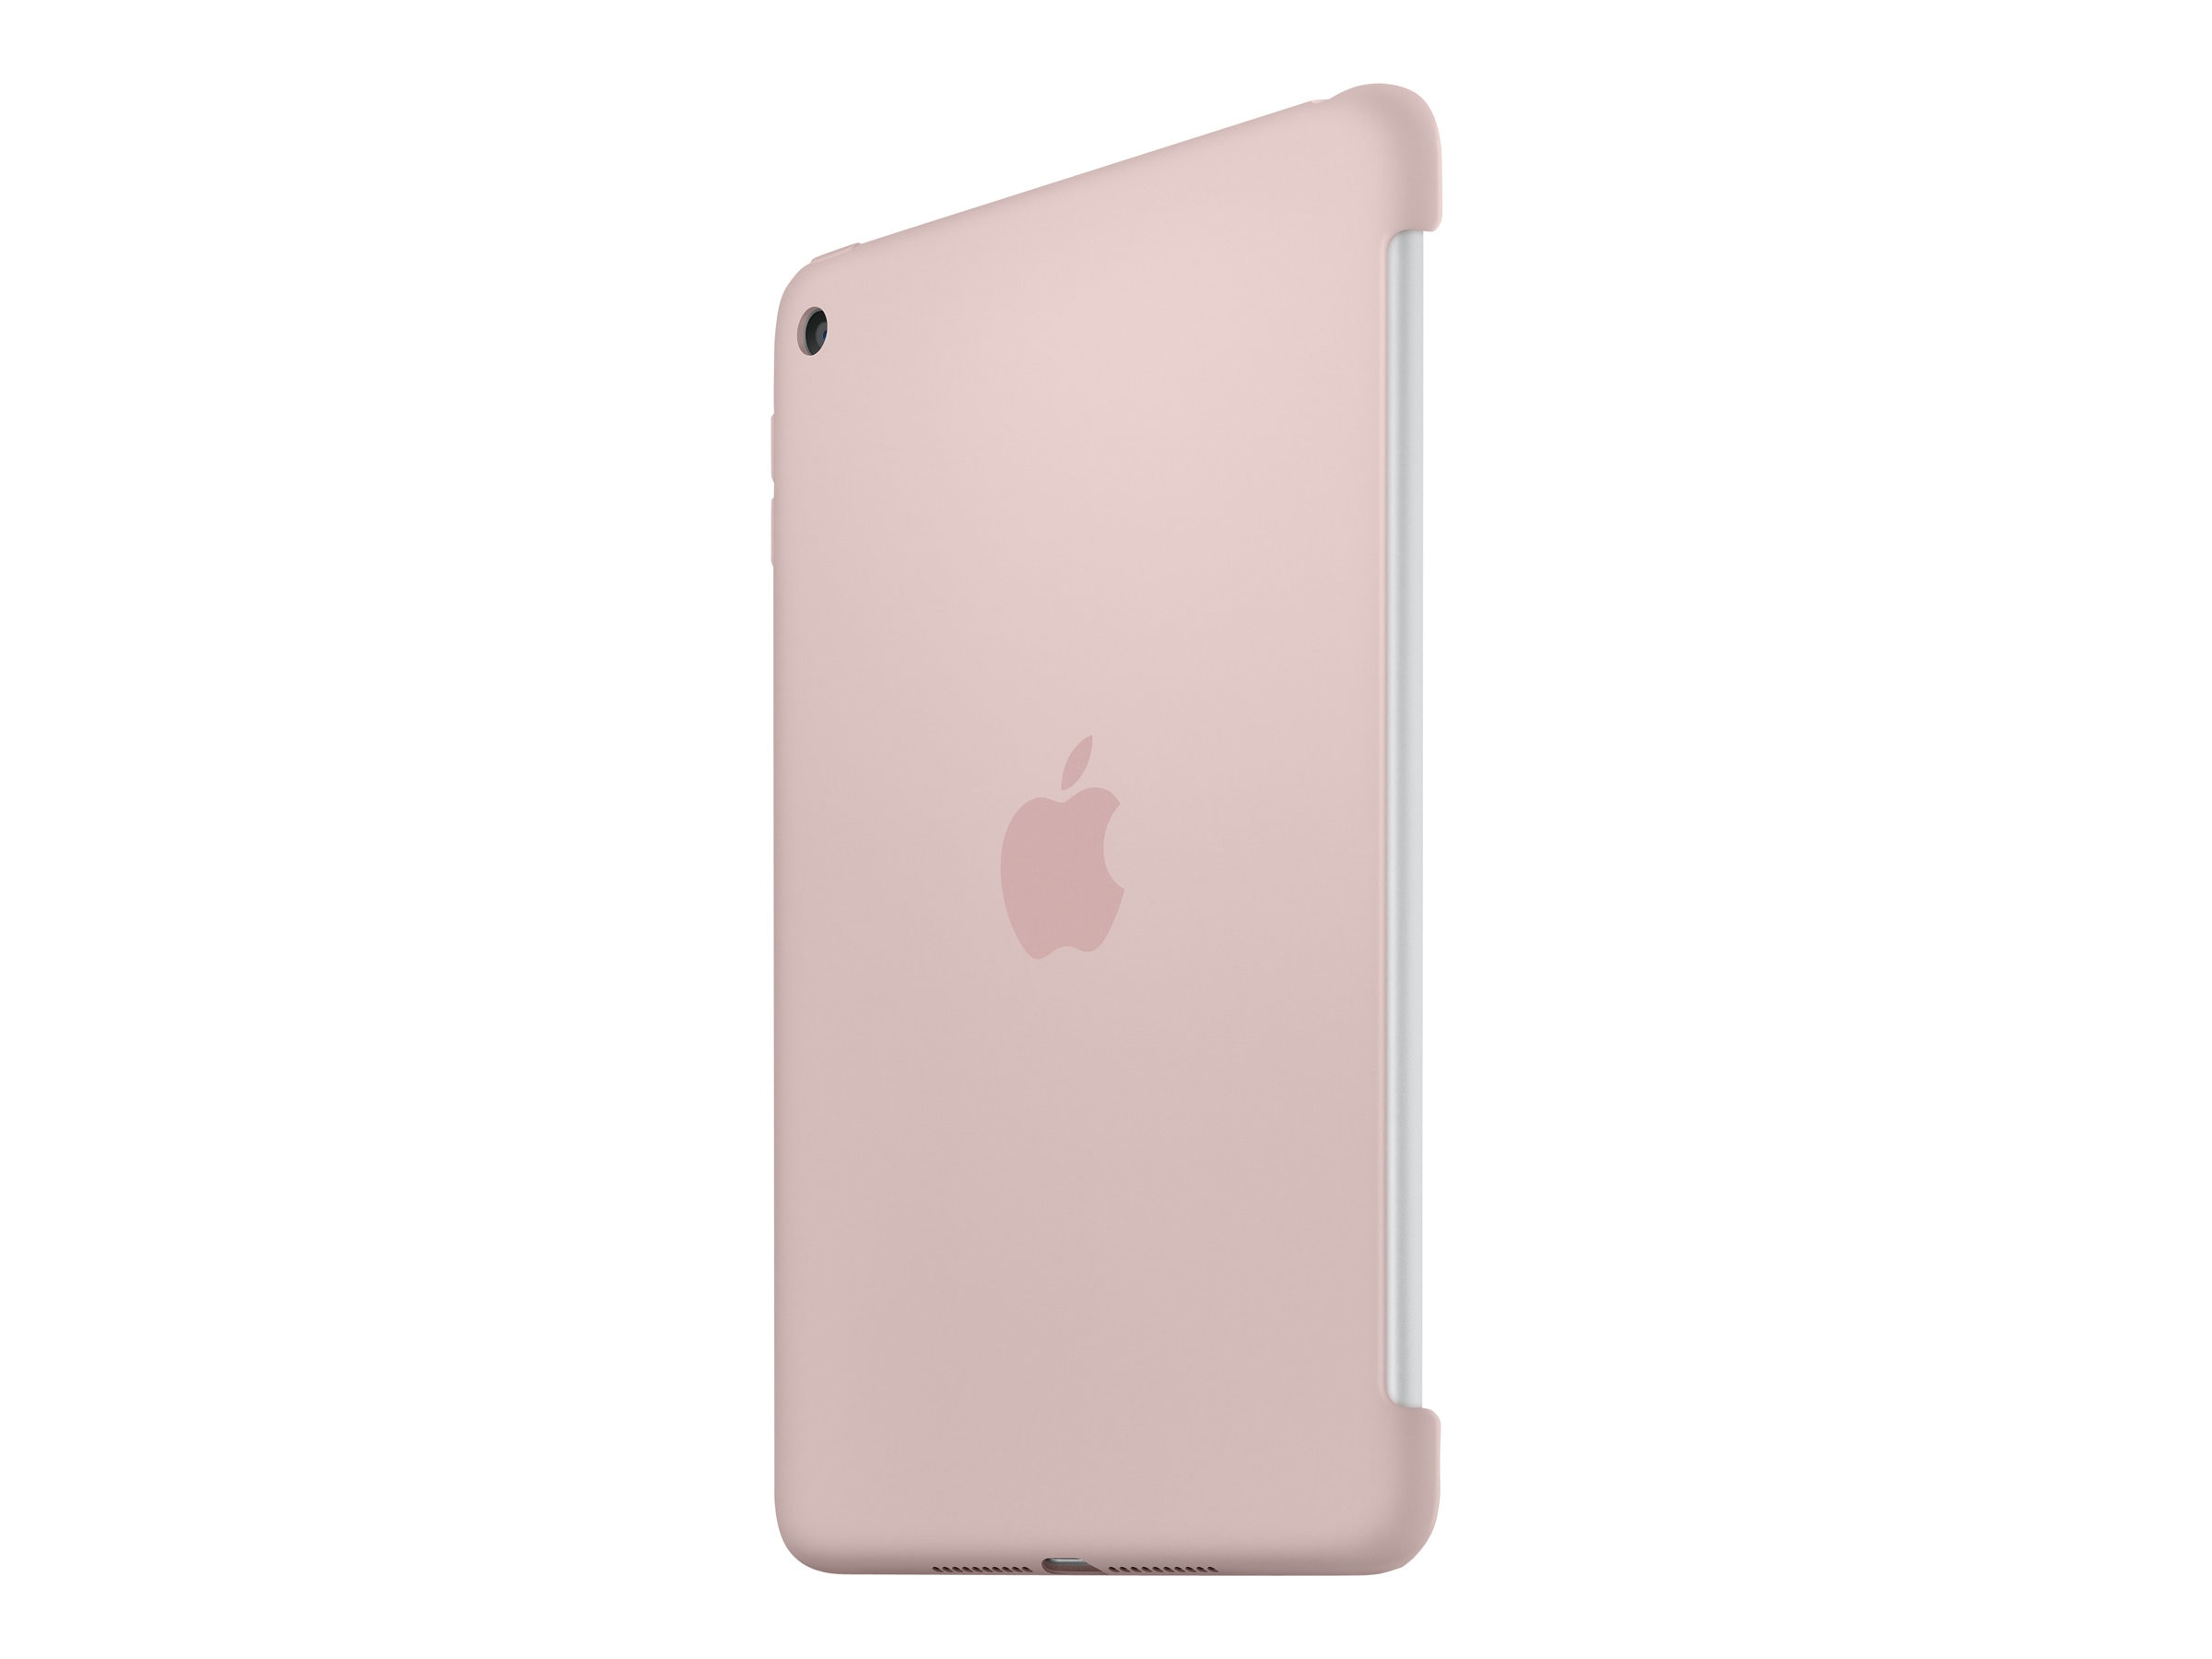 Apple Silicone Case for iPad mini 4, Pink Sand, MNND2ZM/A